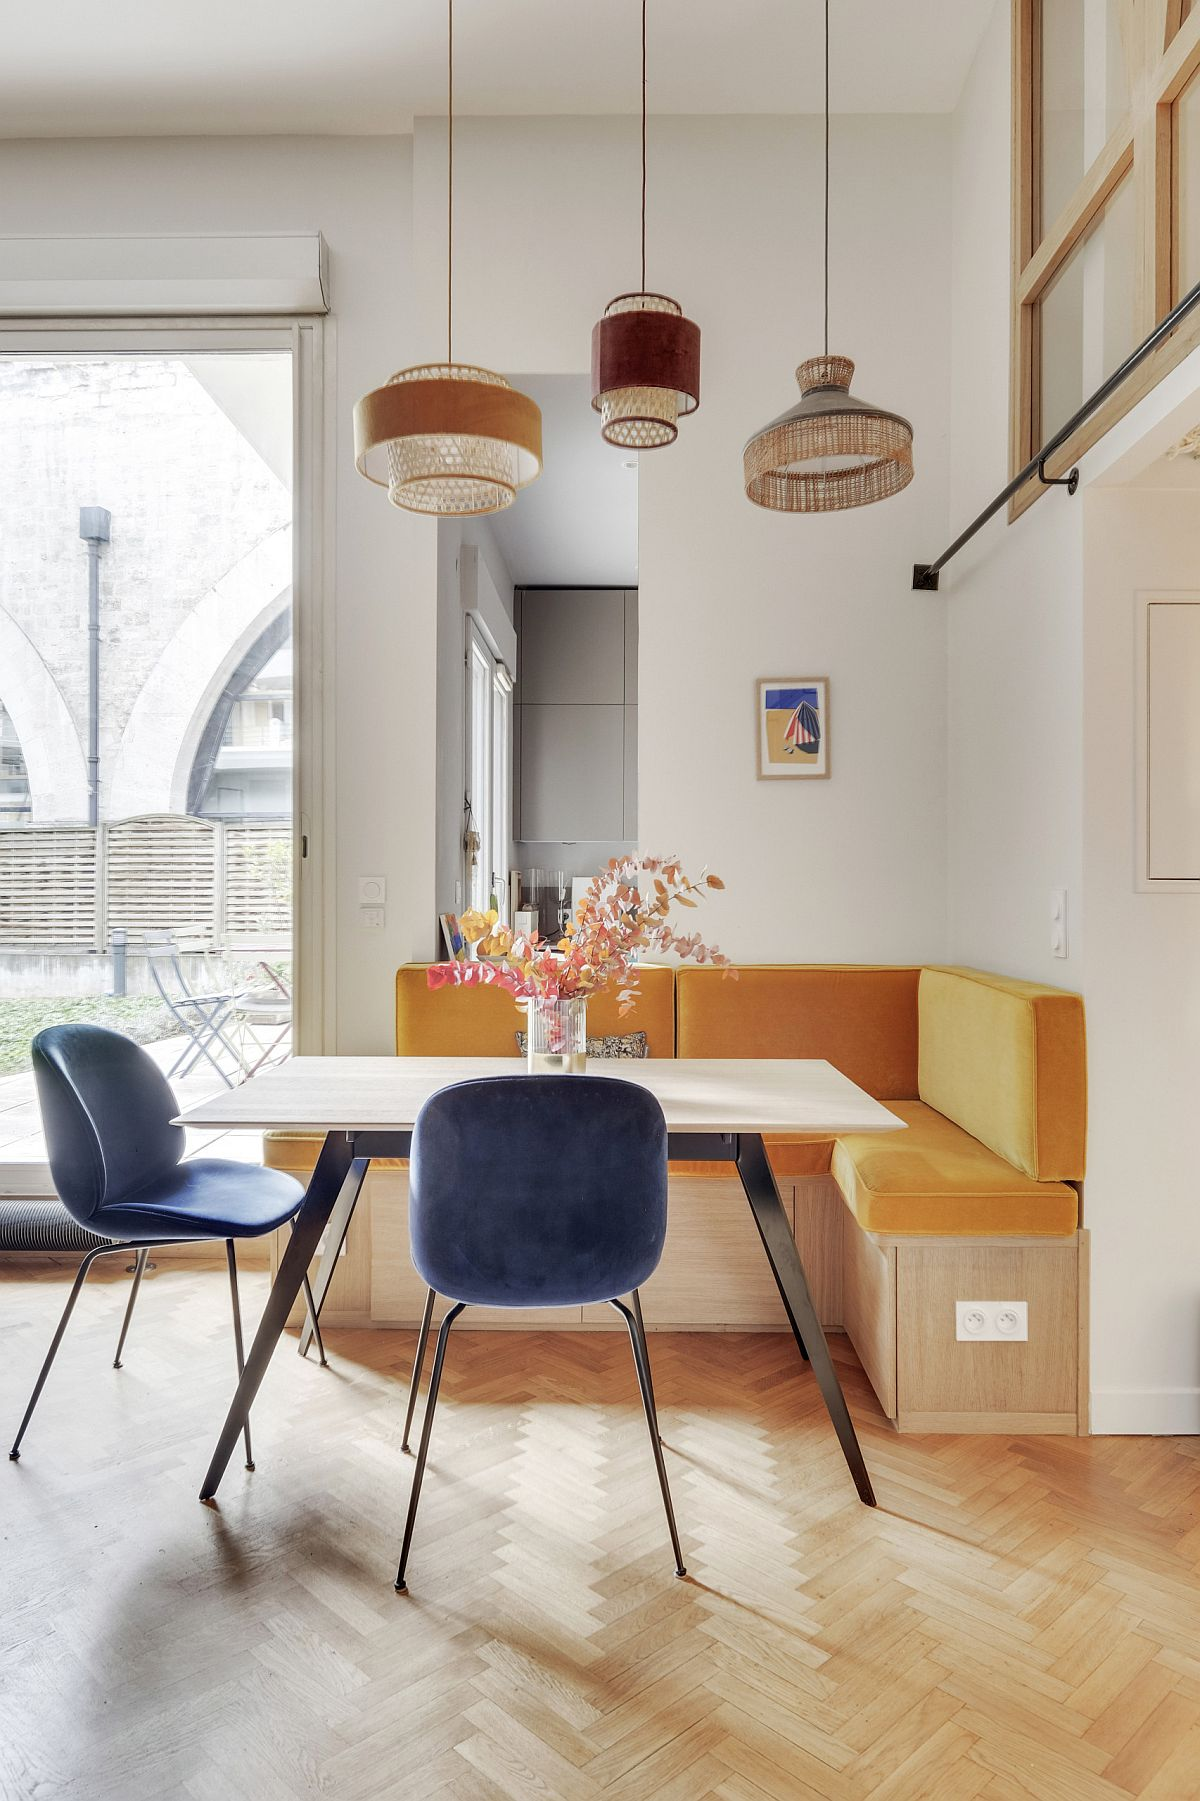 Corner-banquette-seating-for-the-small-Scandinavian-style-dining-room-38103